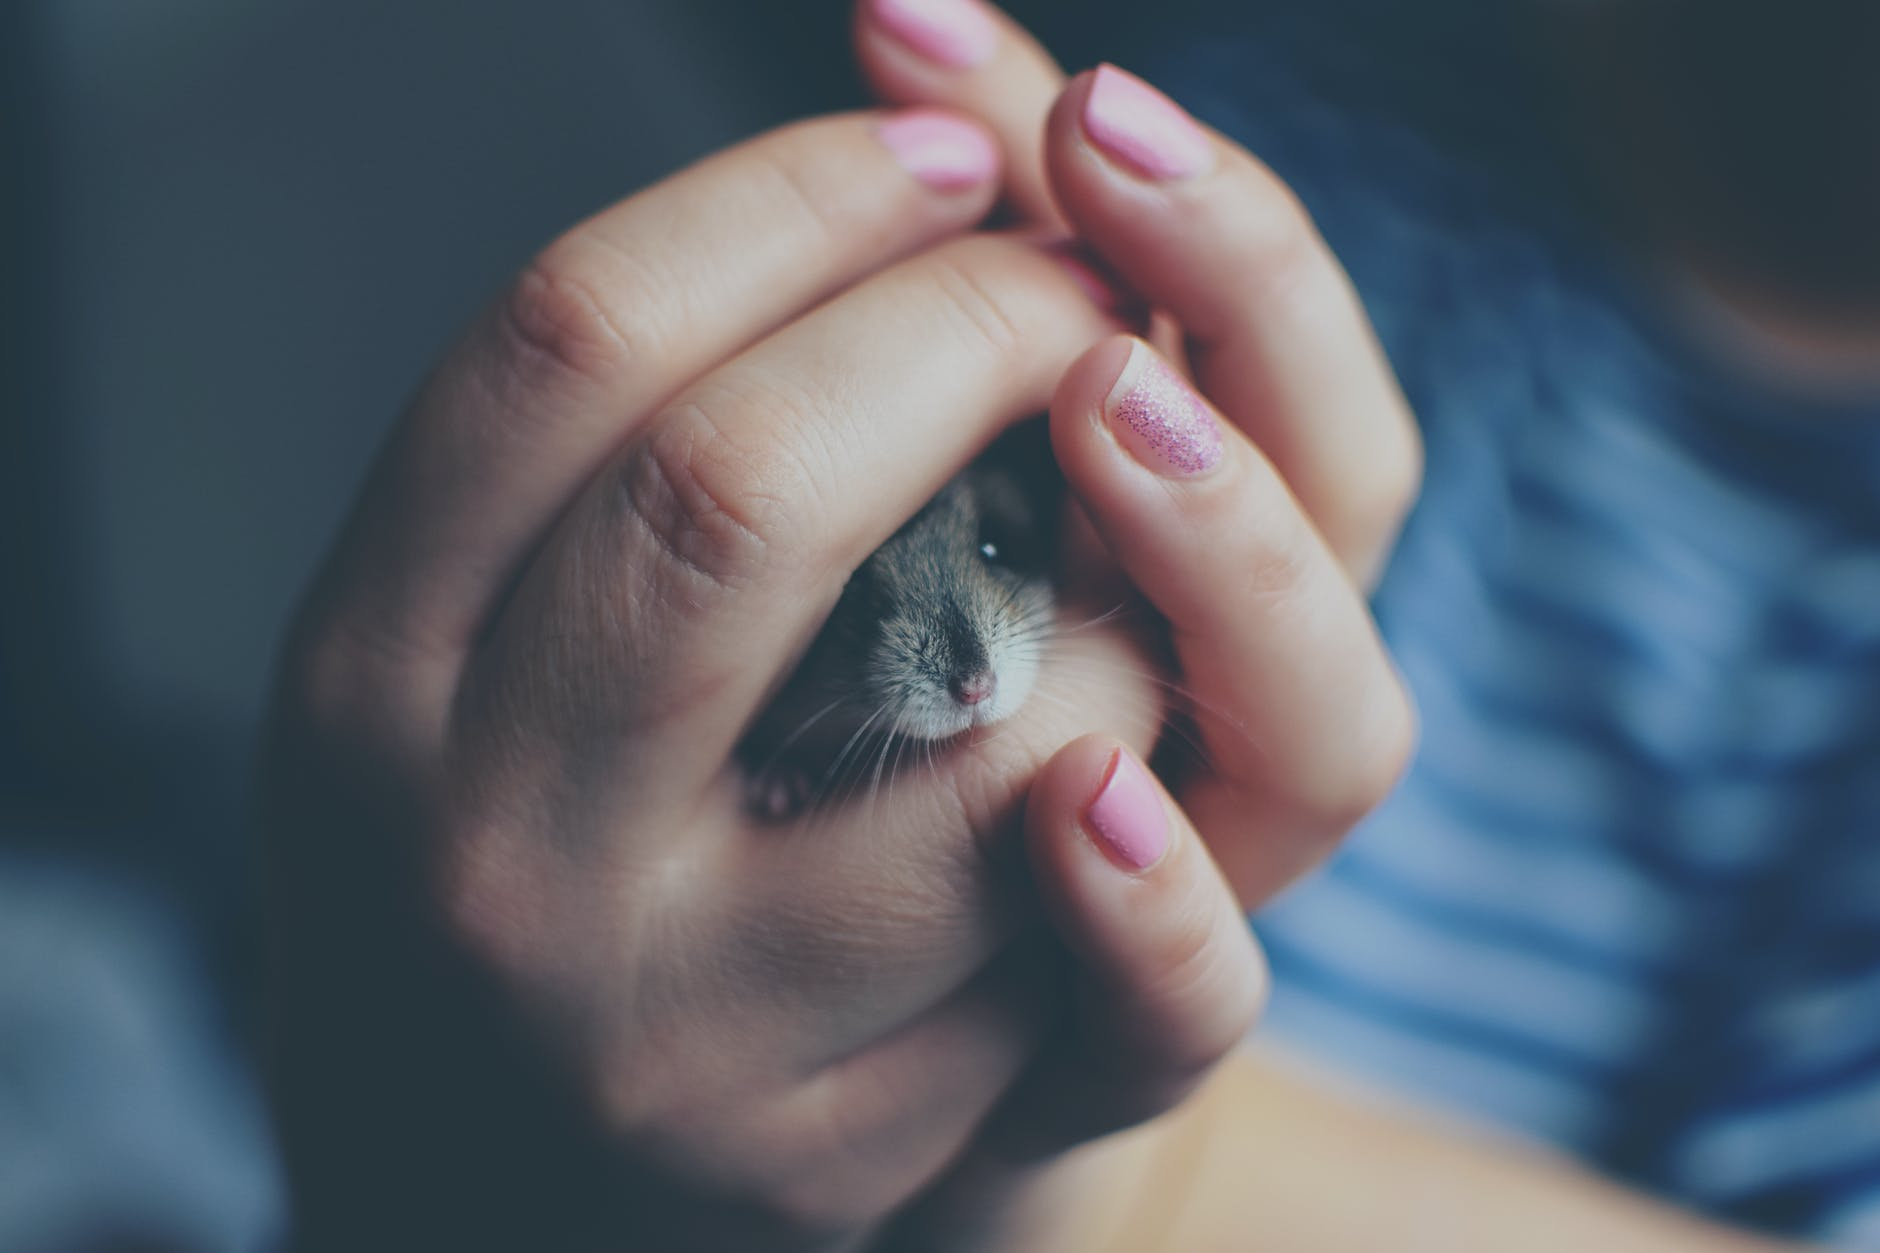 a hamster inside the hands of a woman